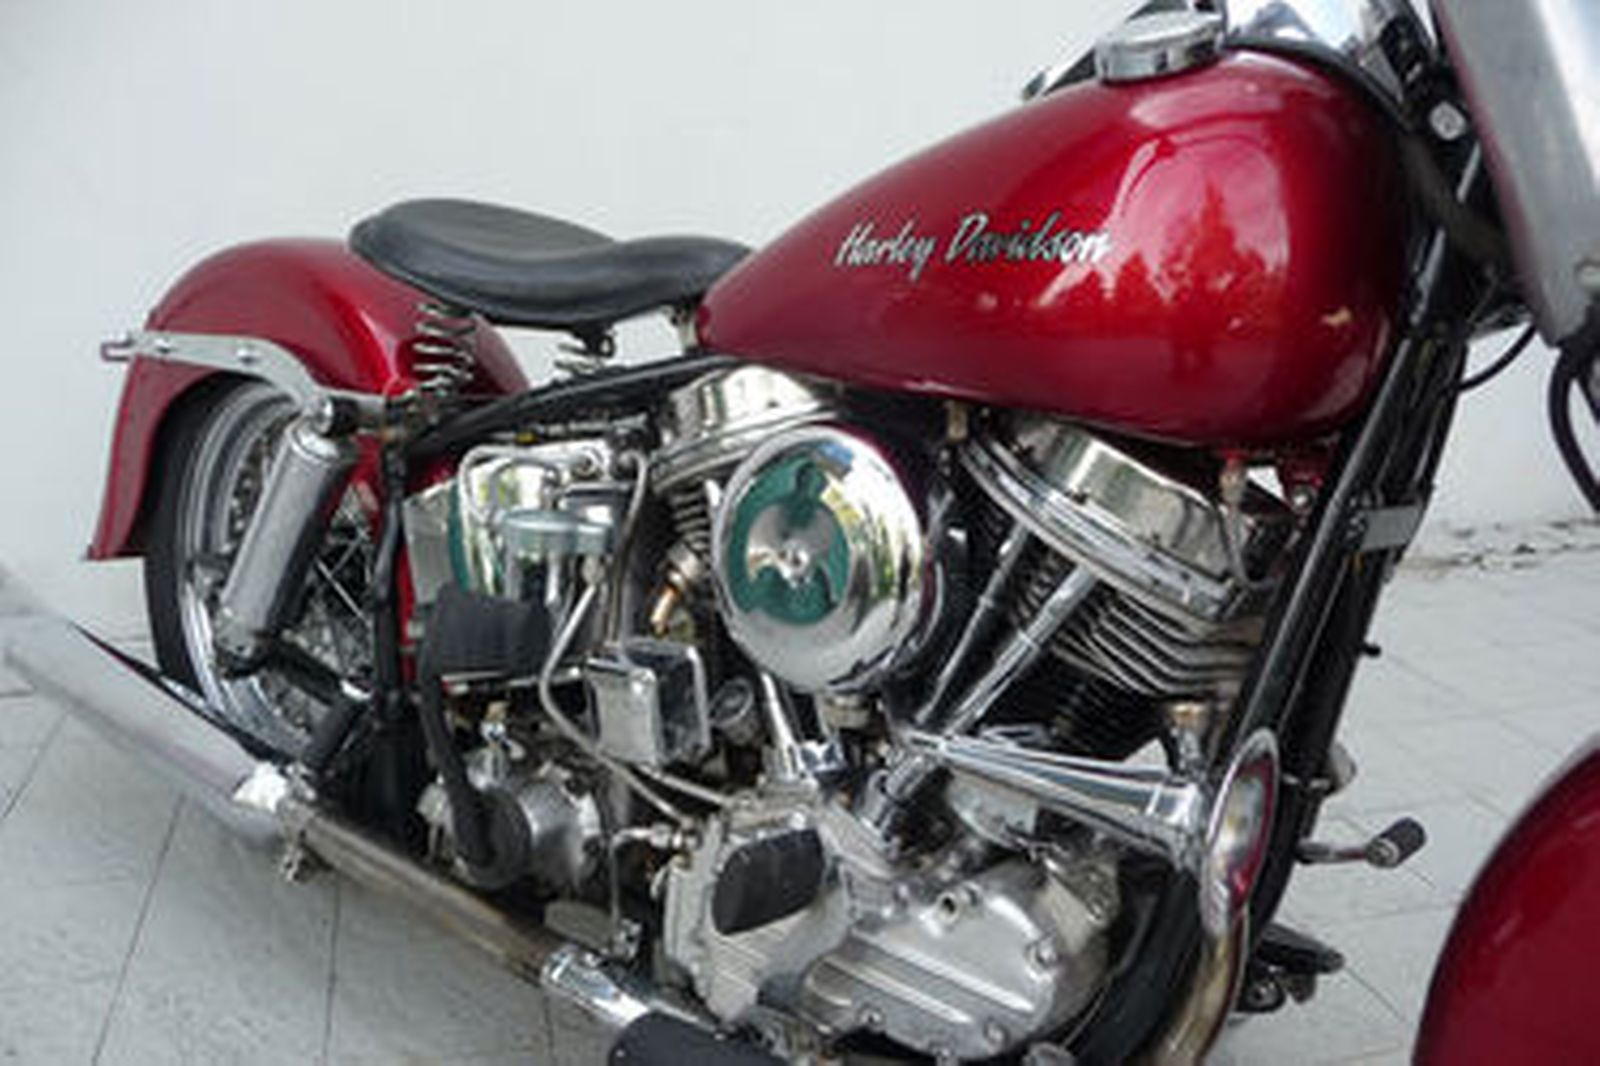 Harley Davidson: Harley-Davidson FLH Duo Glide Motorcycle Auctions